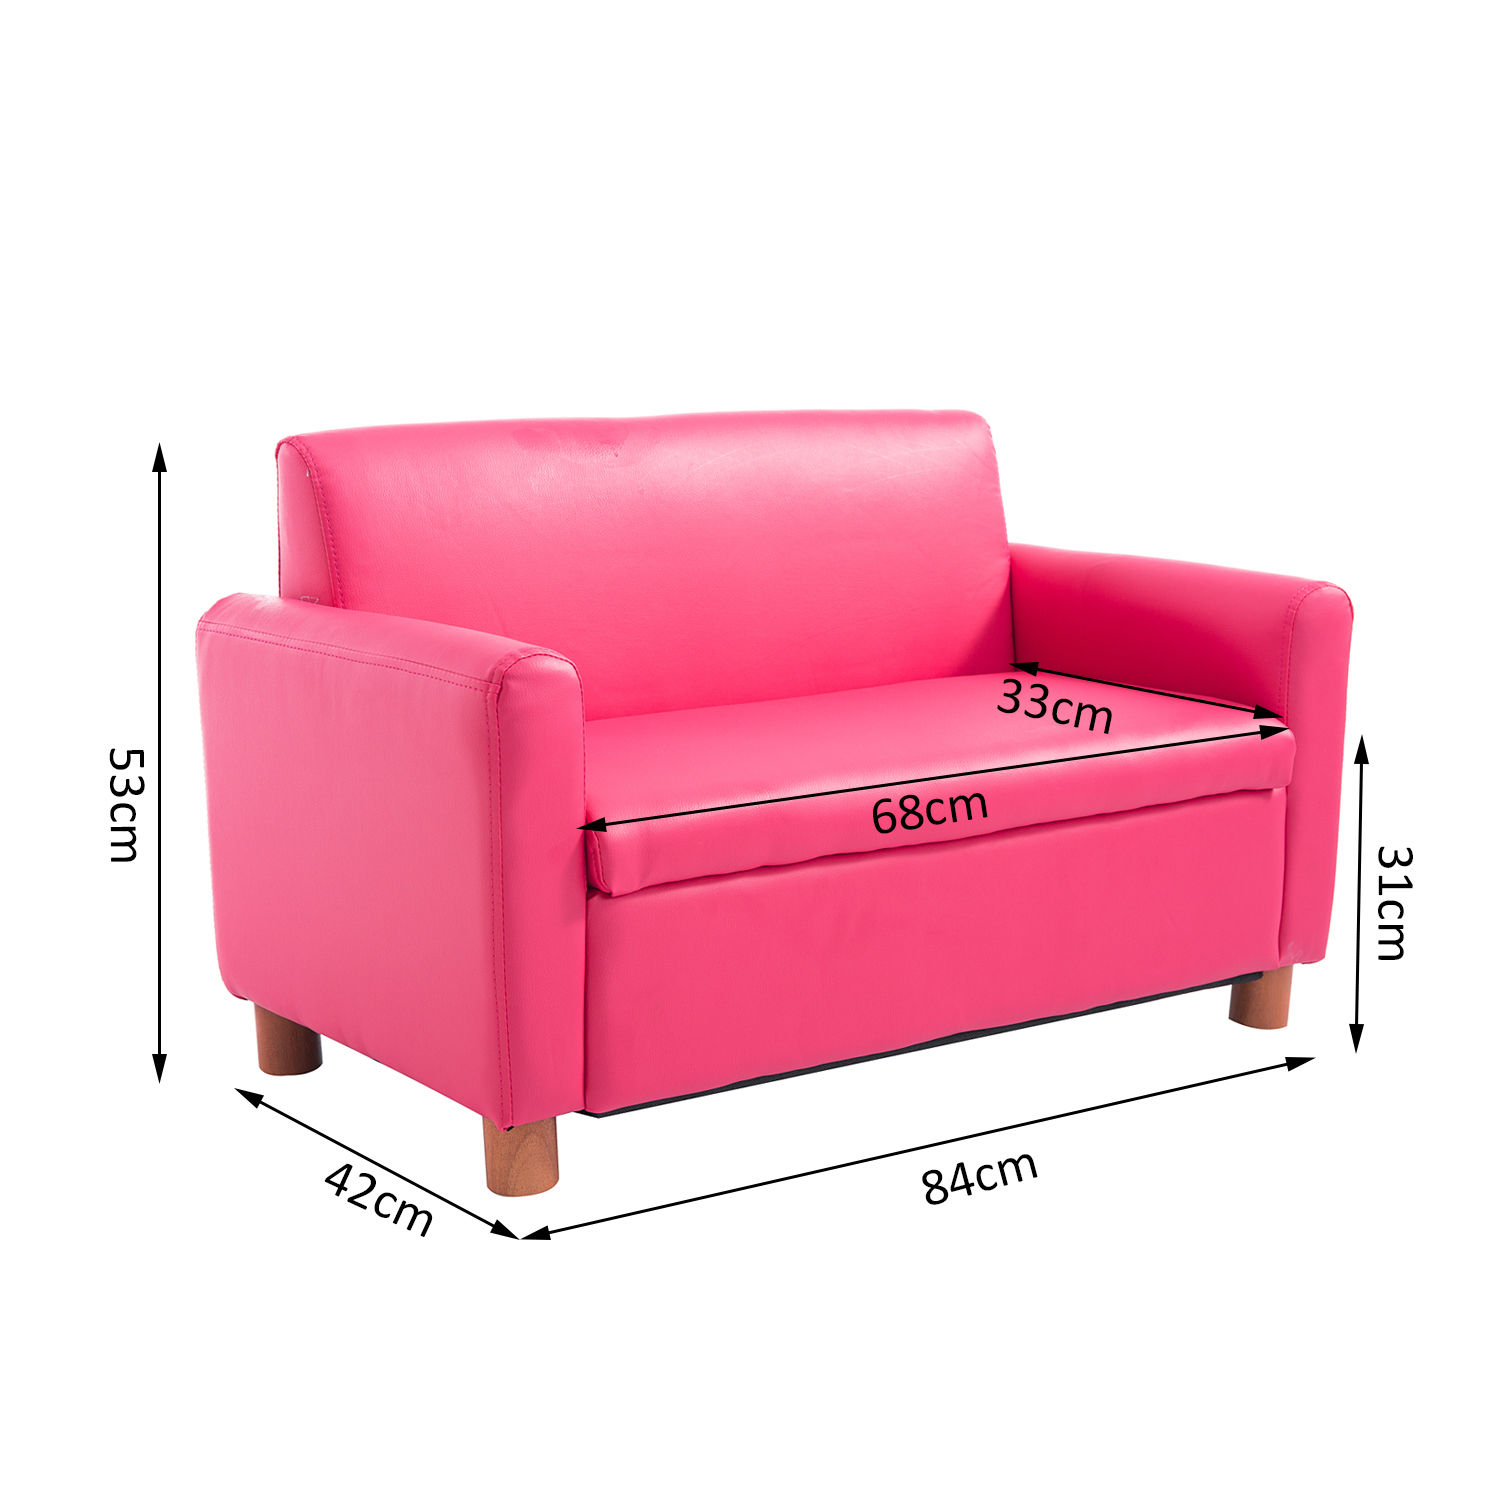 pink sofa dating uk good quality brands kids single pu leather armchair toddler couch